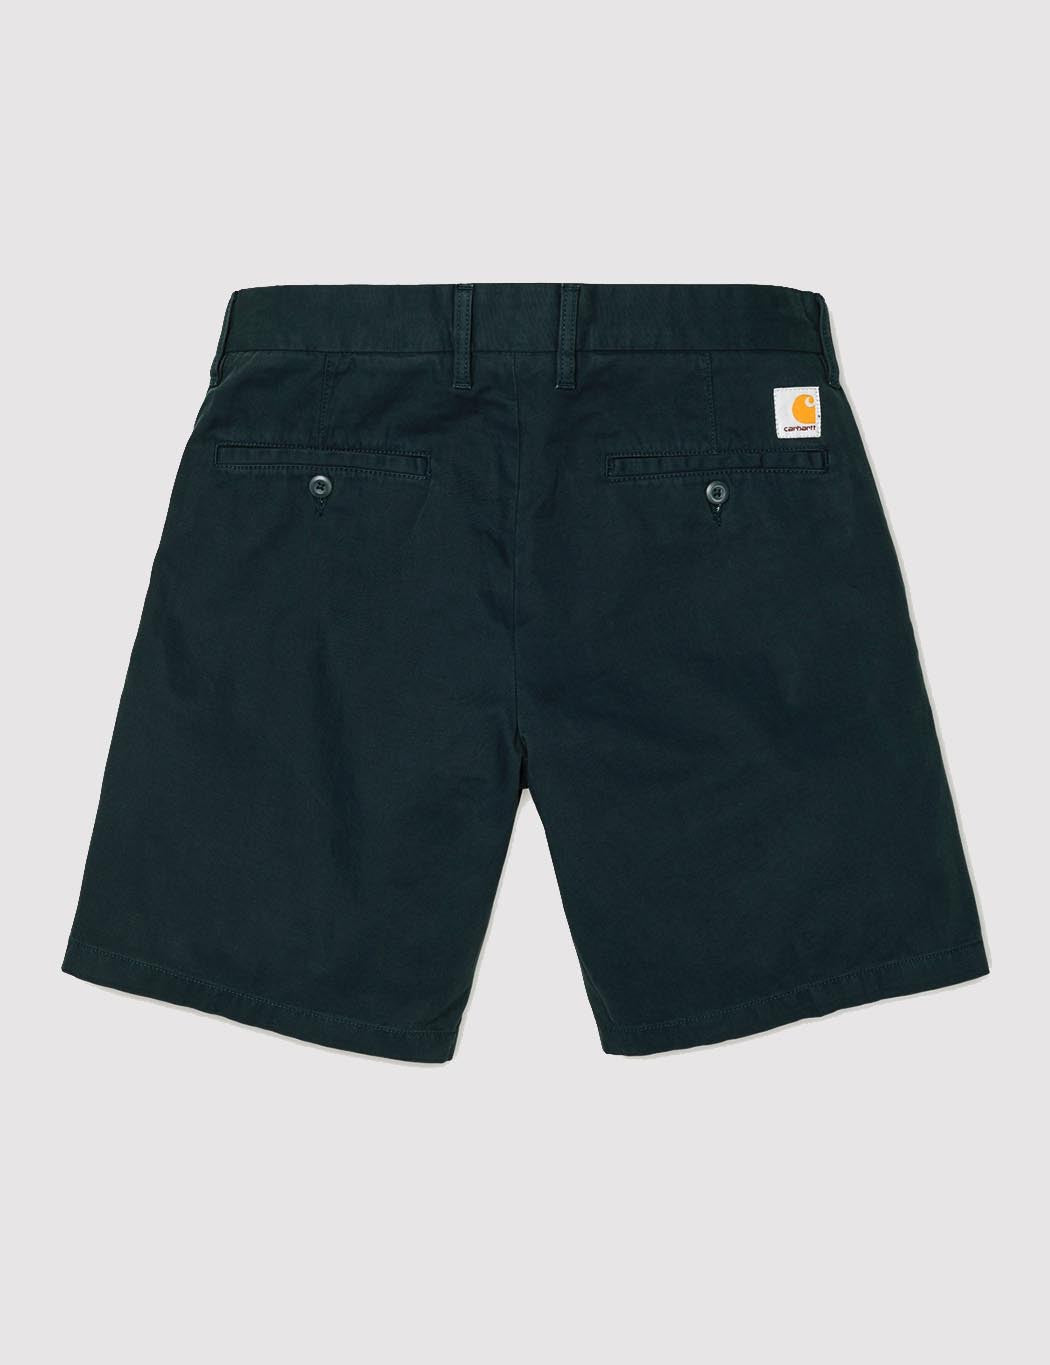 Carhartt John Shorts - Black